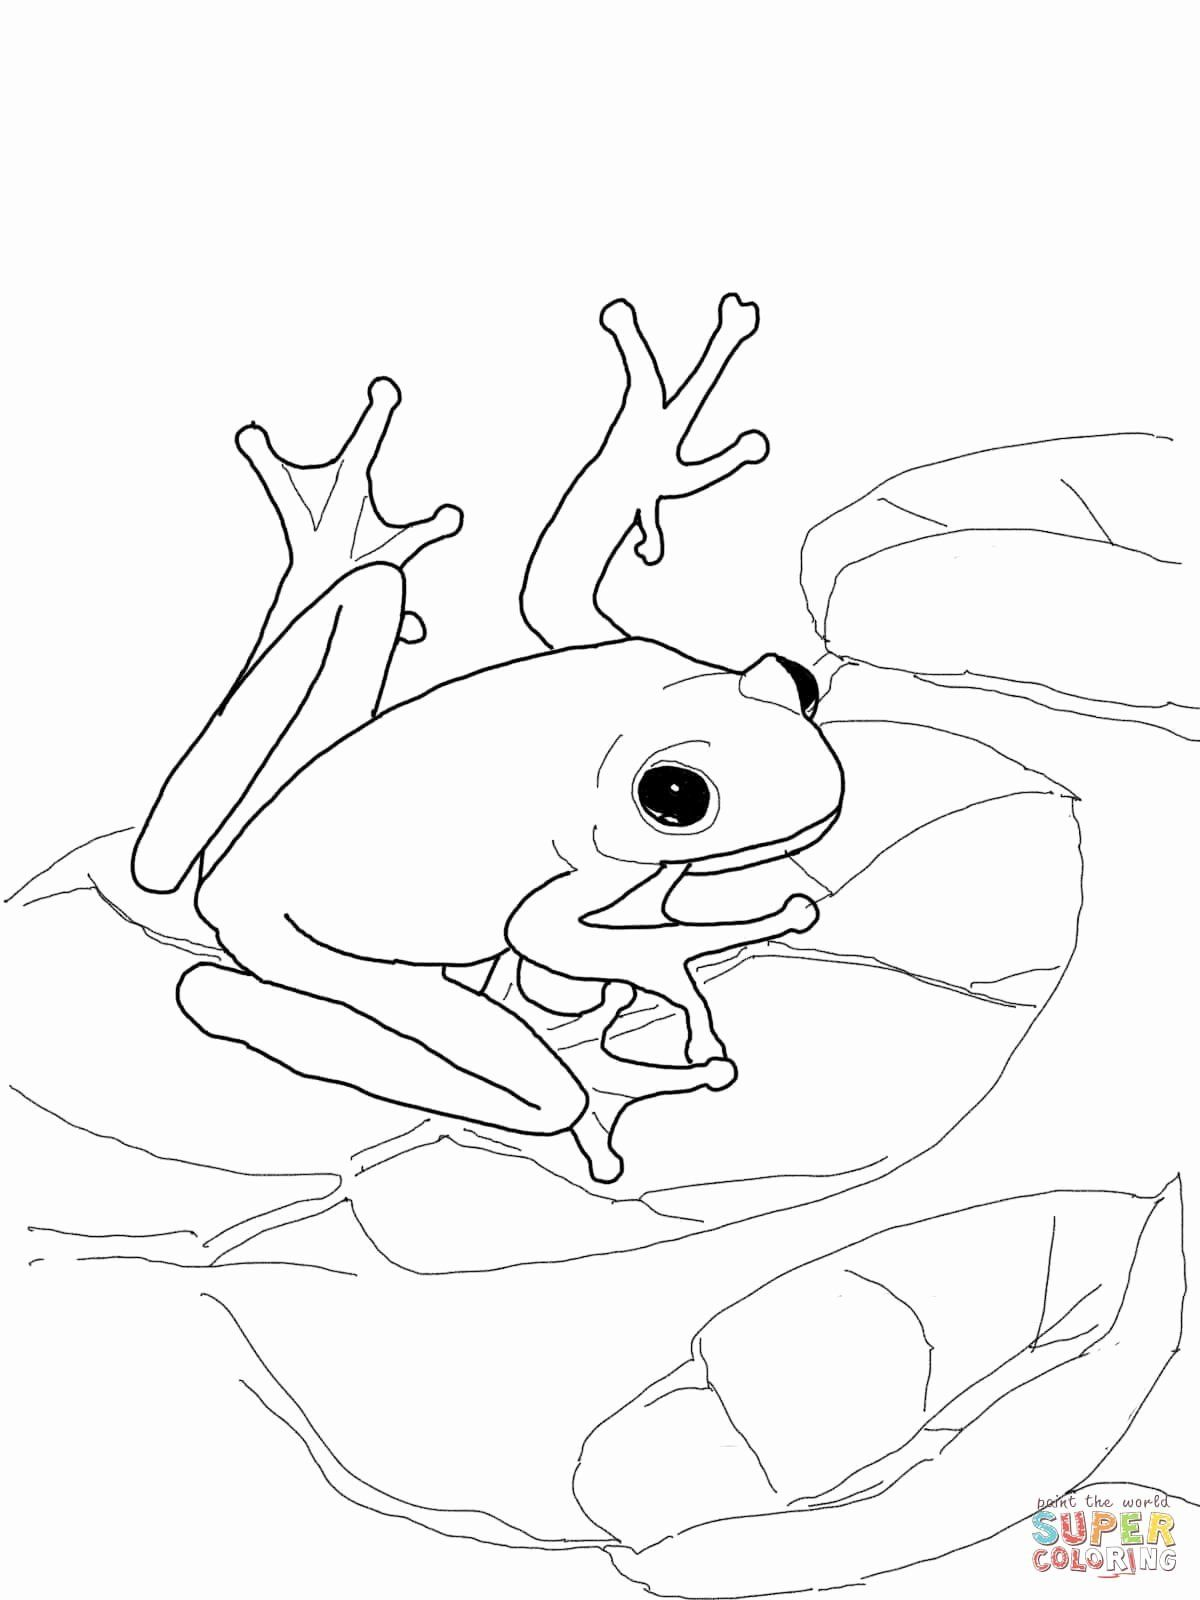 Tree Frog Coloring Page Unique Pin By Jj Dunagan On Bullets In